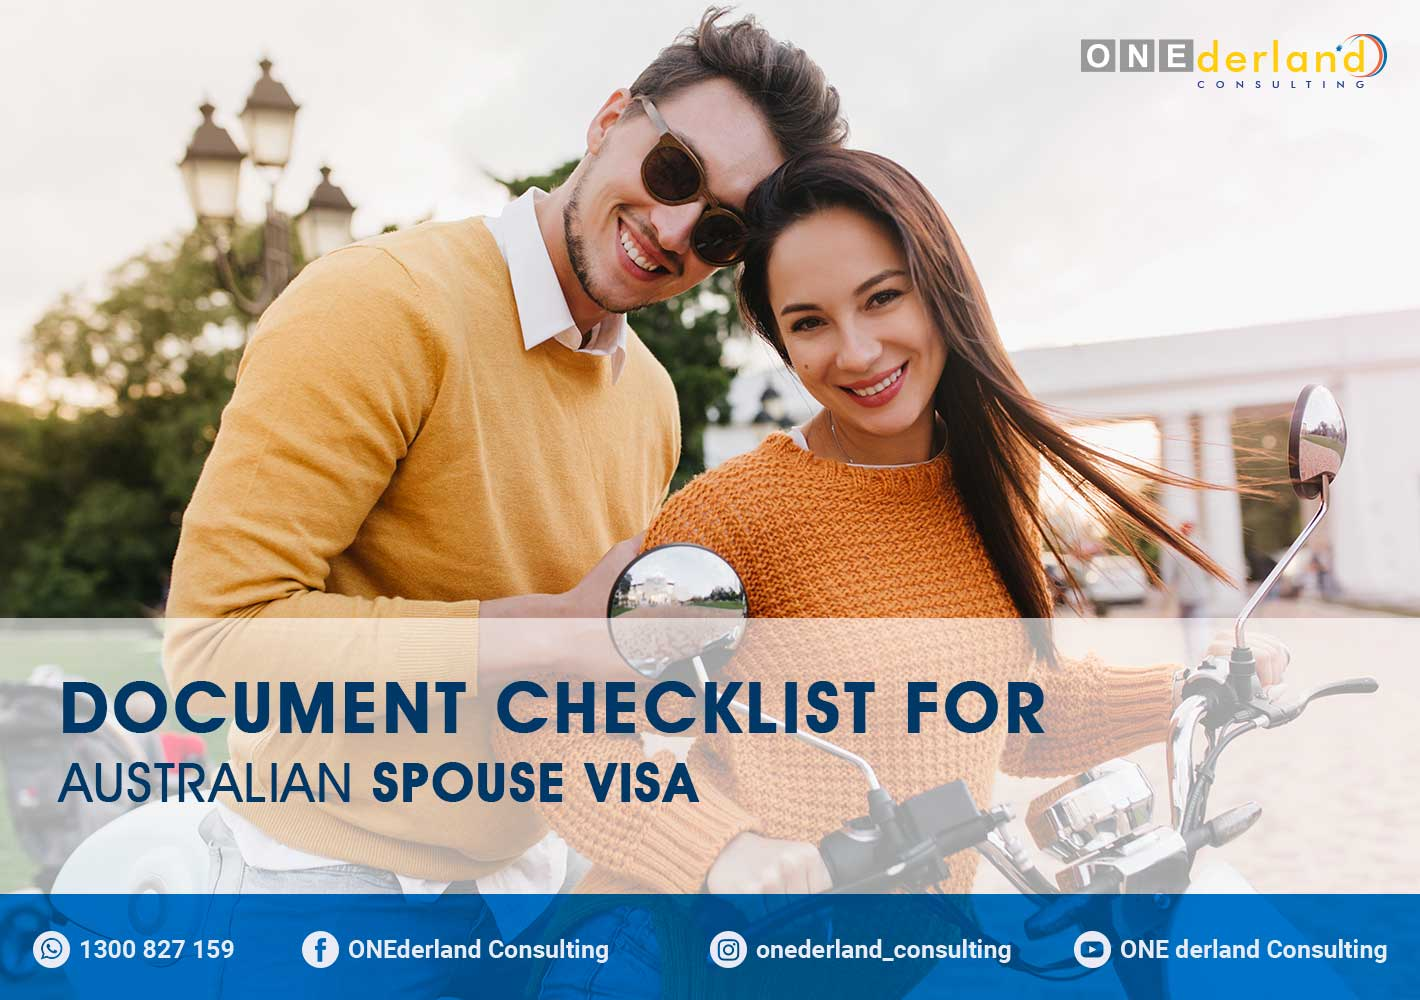 Document Checklist for Australian Spouse Visa